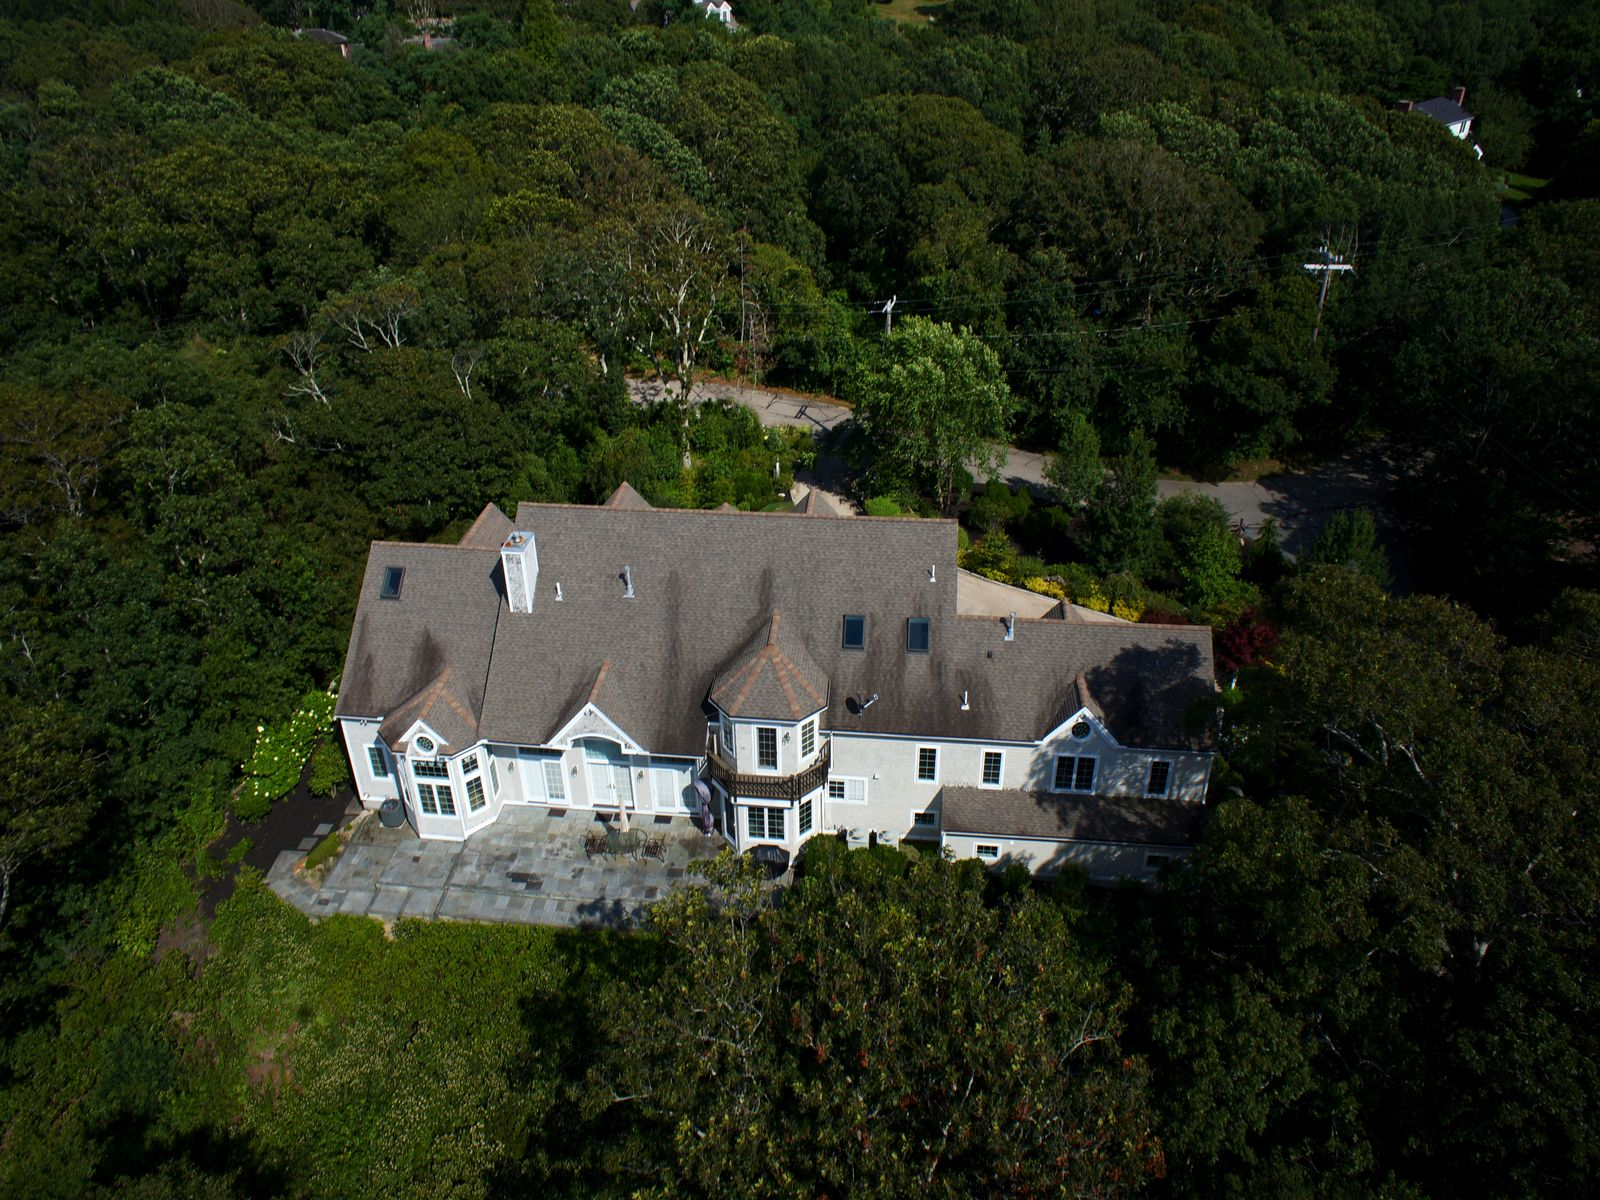 Gracious Home with Commanding Ocean View, Falmouth MA Single Family Home - Cape Cod Real Estate